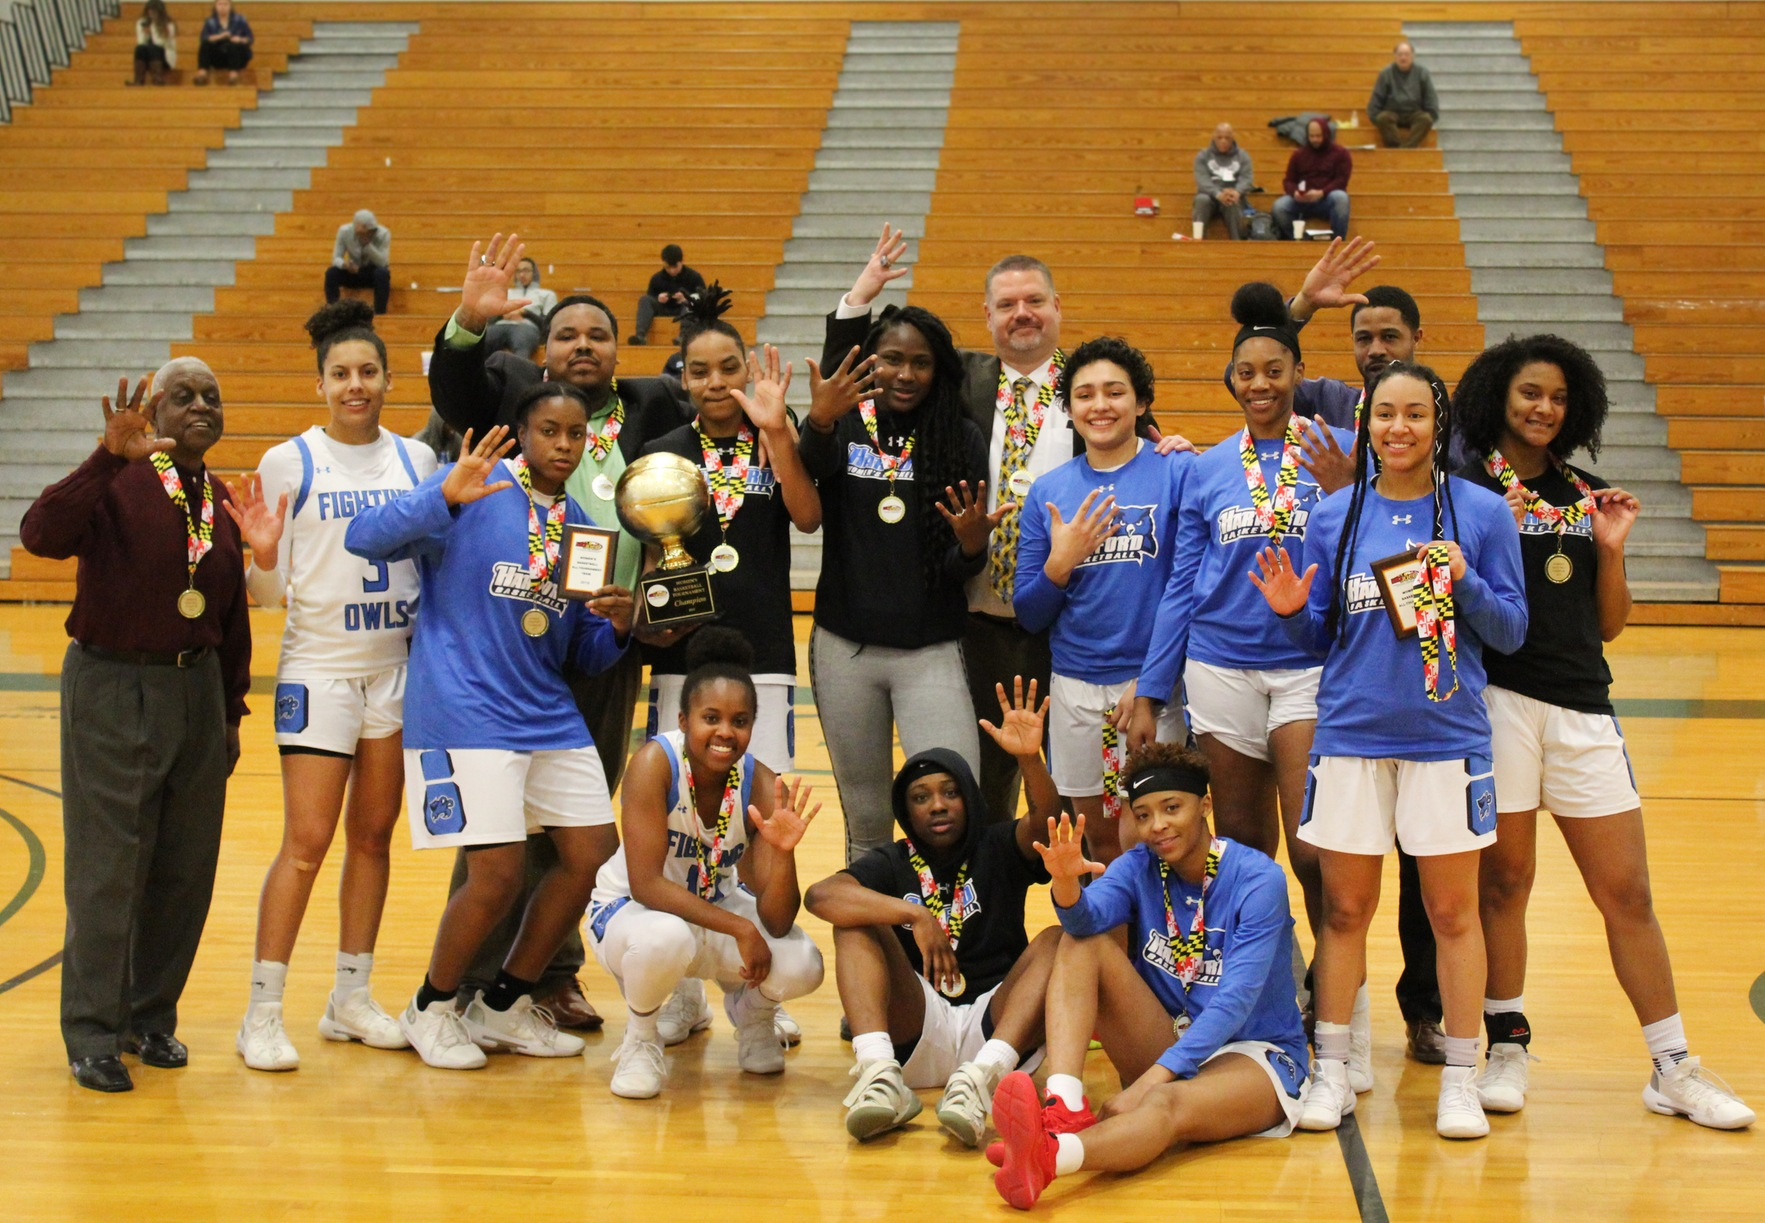 MDJUCO Women's Basketball Tournament: Fighting Owls Soar Past Panthers for 5th Straight Title